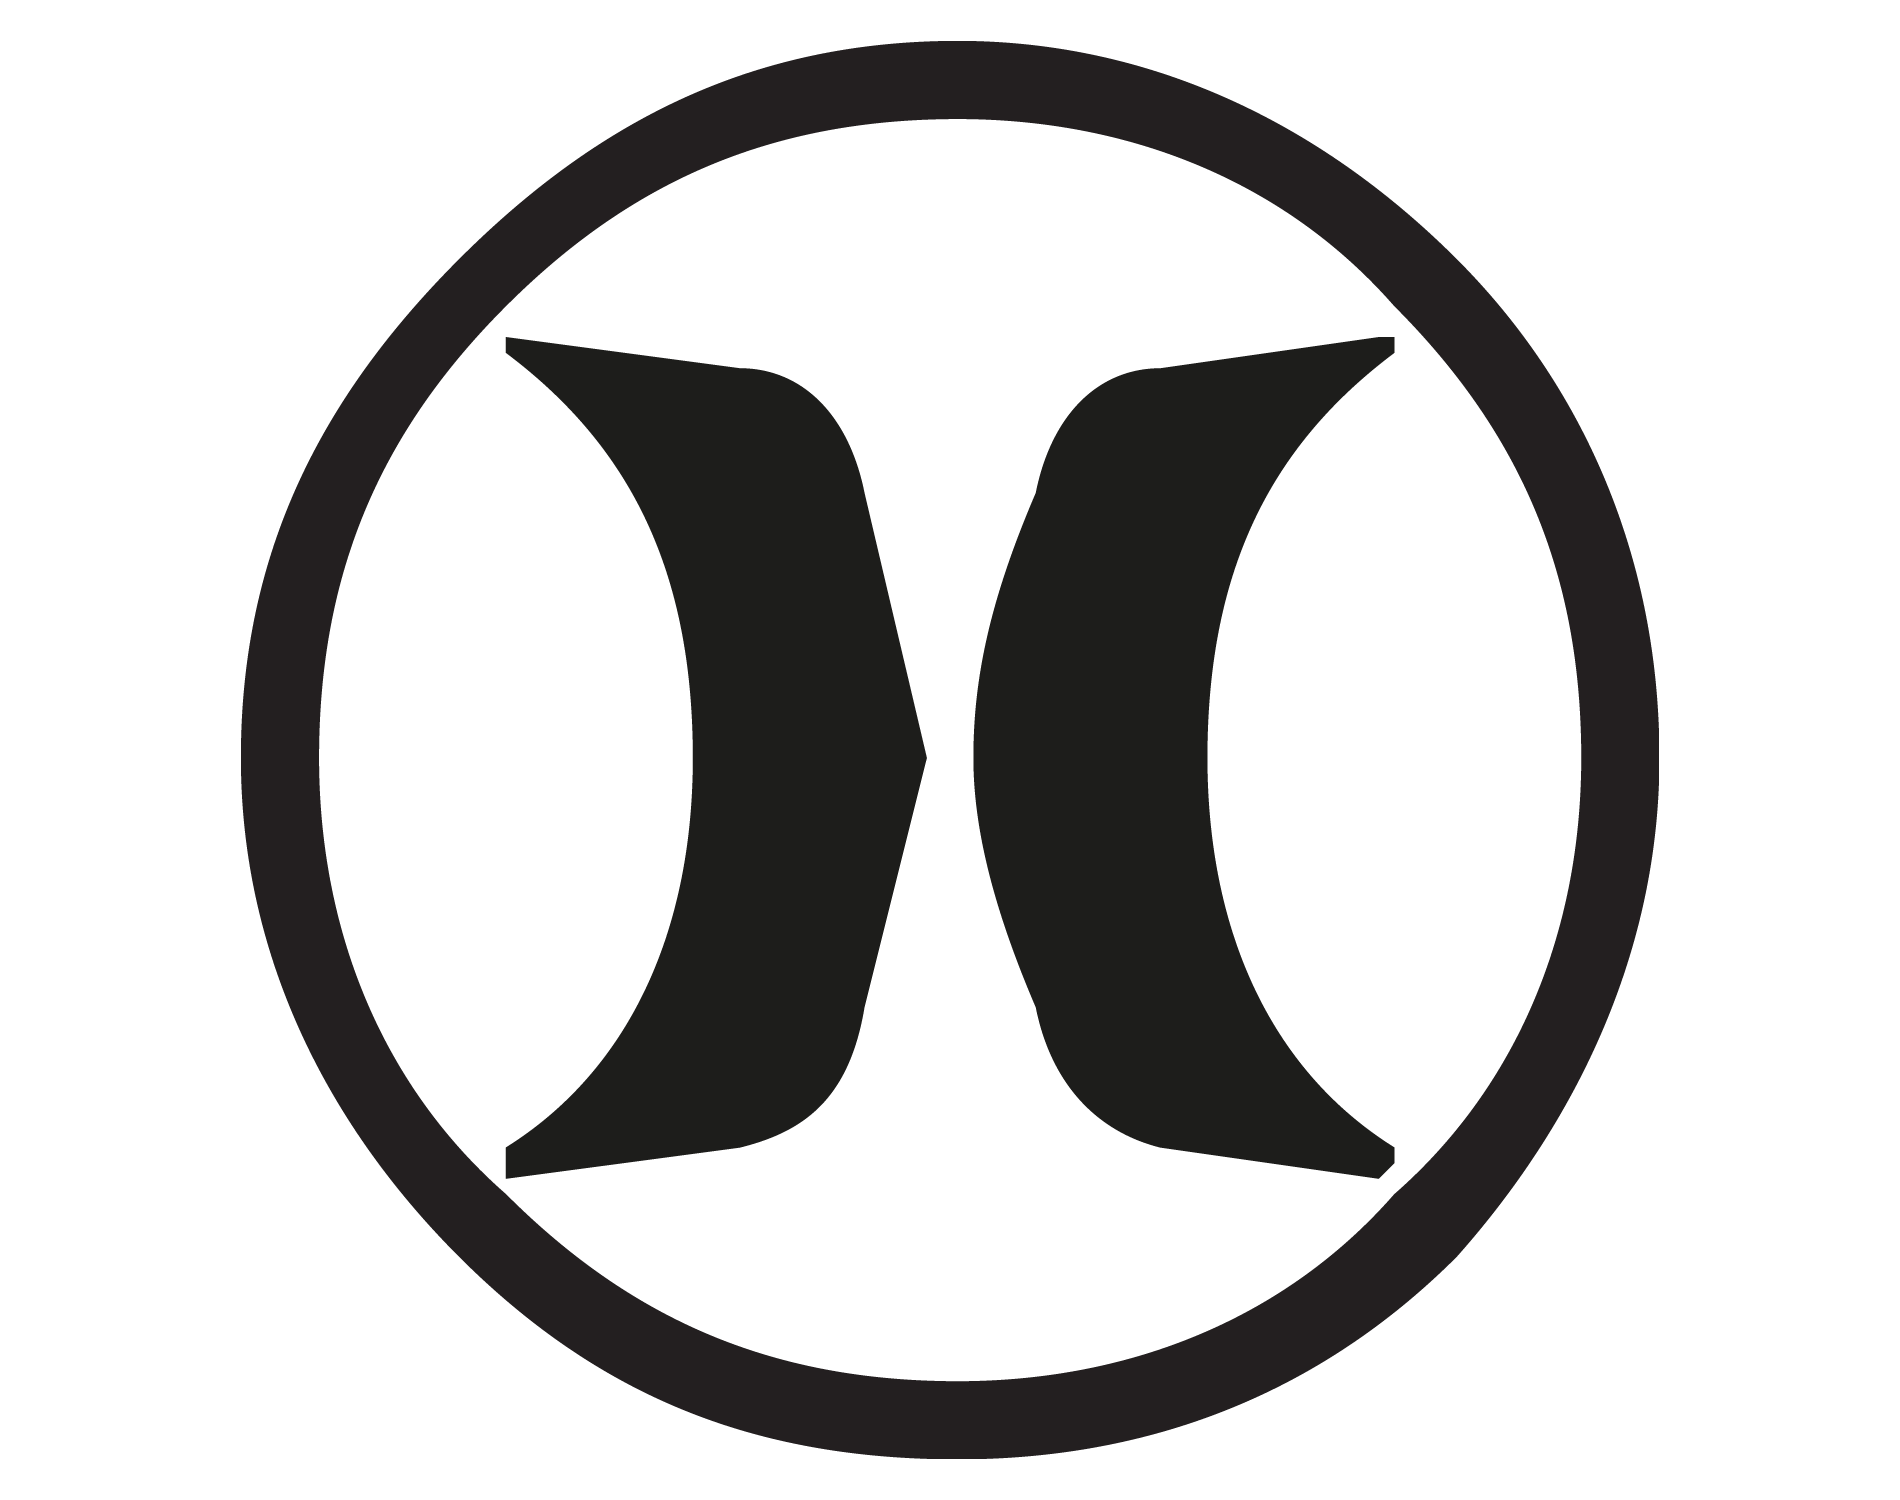 Hurley Logo And Symbol, Meaning, History, Png - Hurley Logo PNG